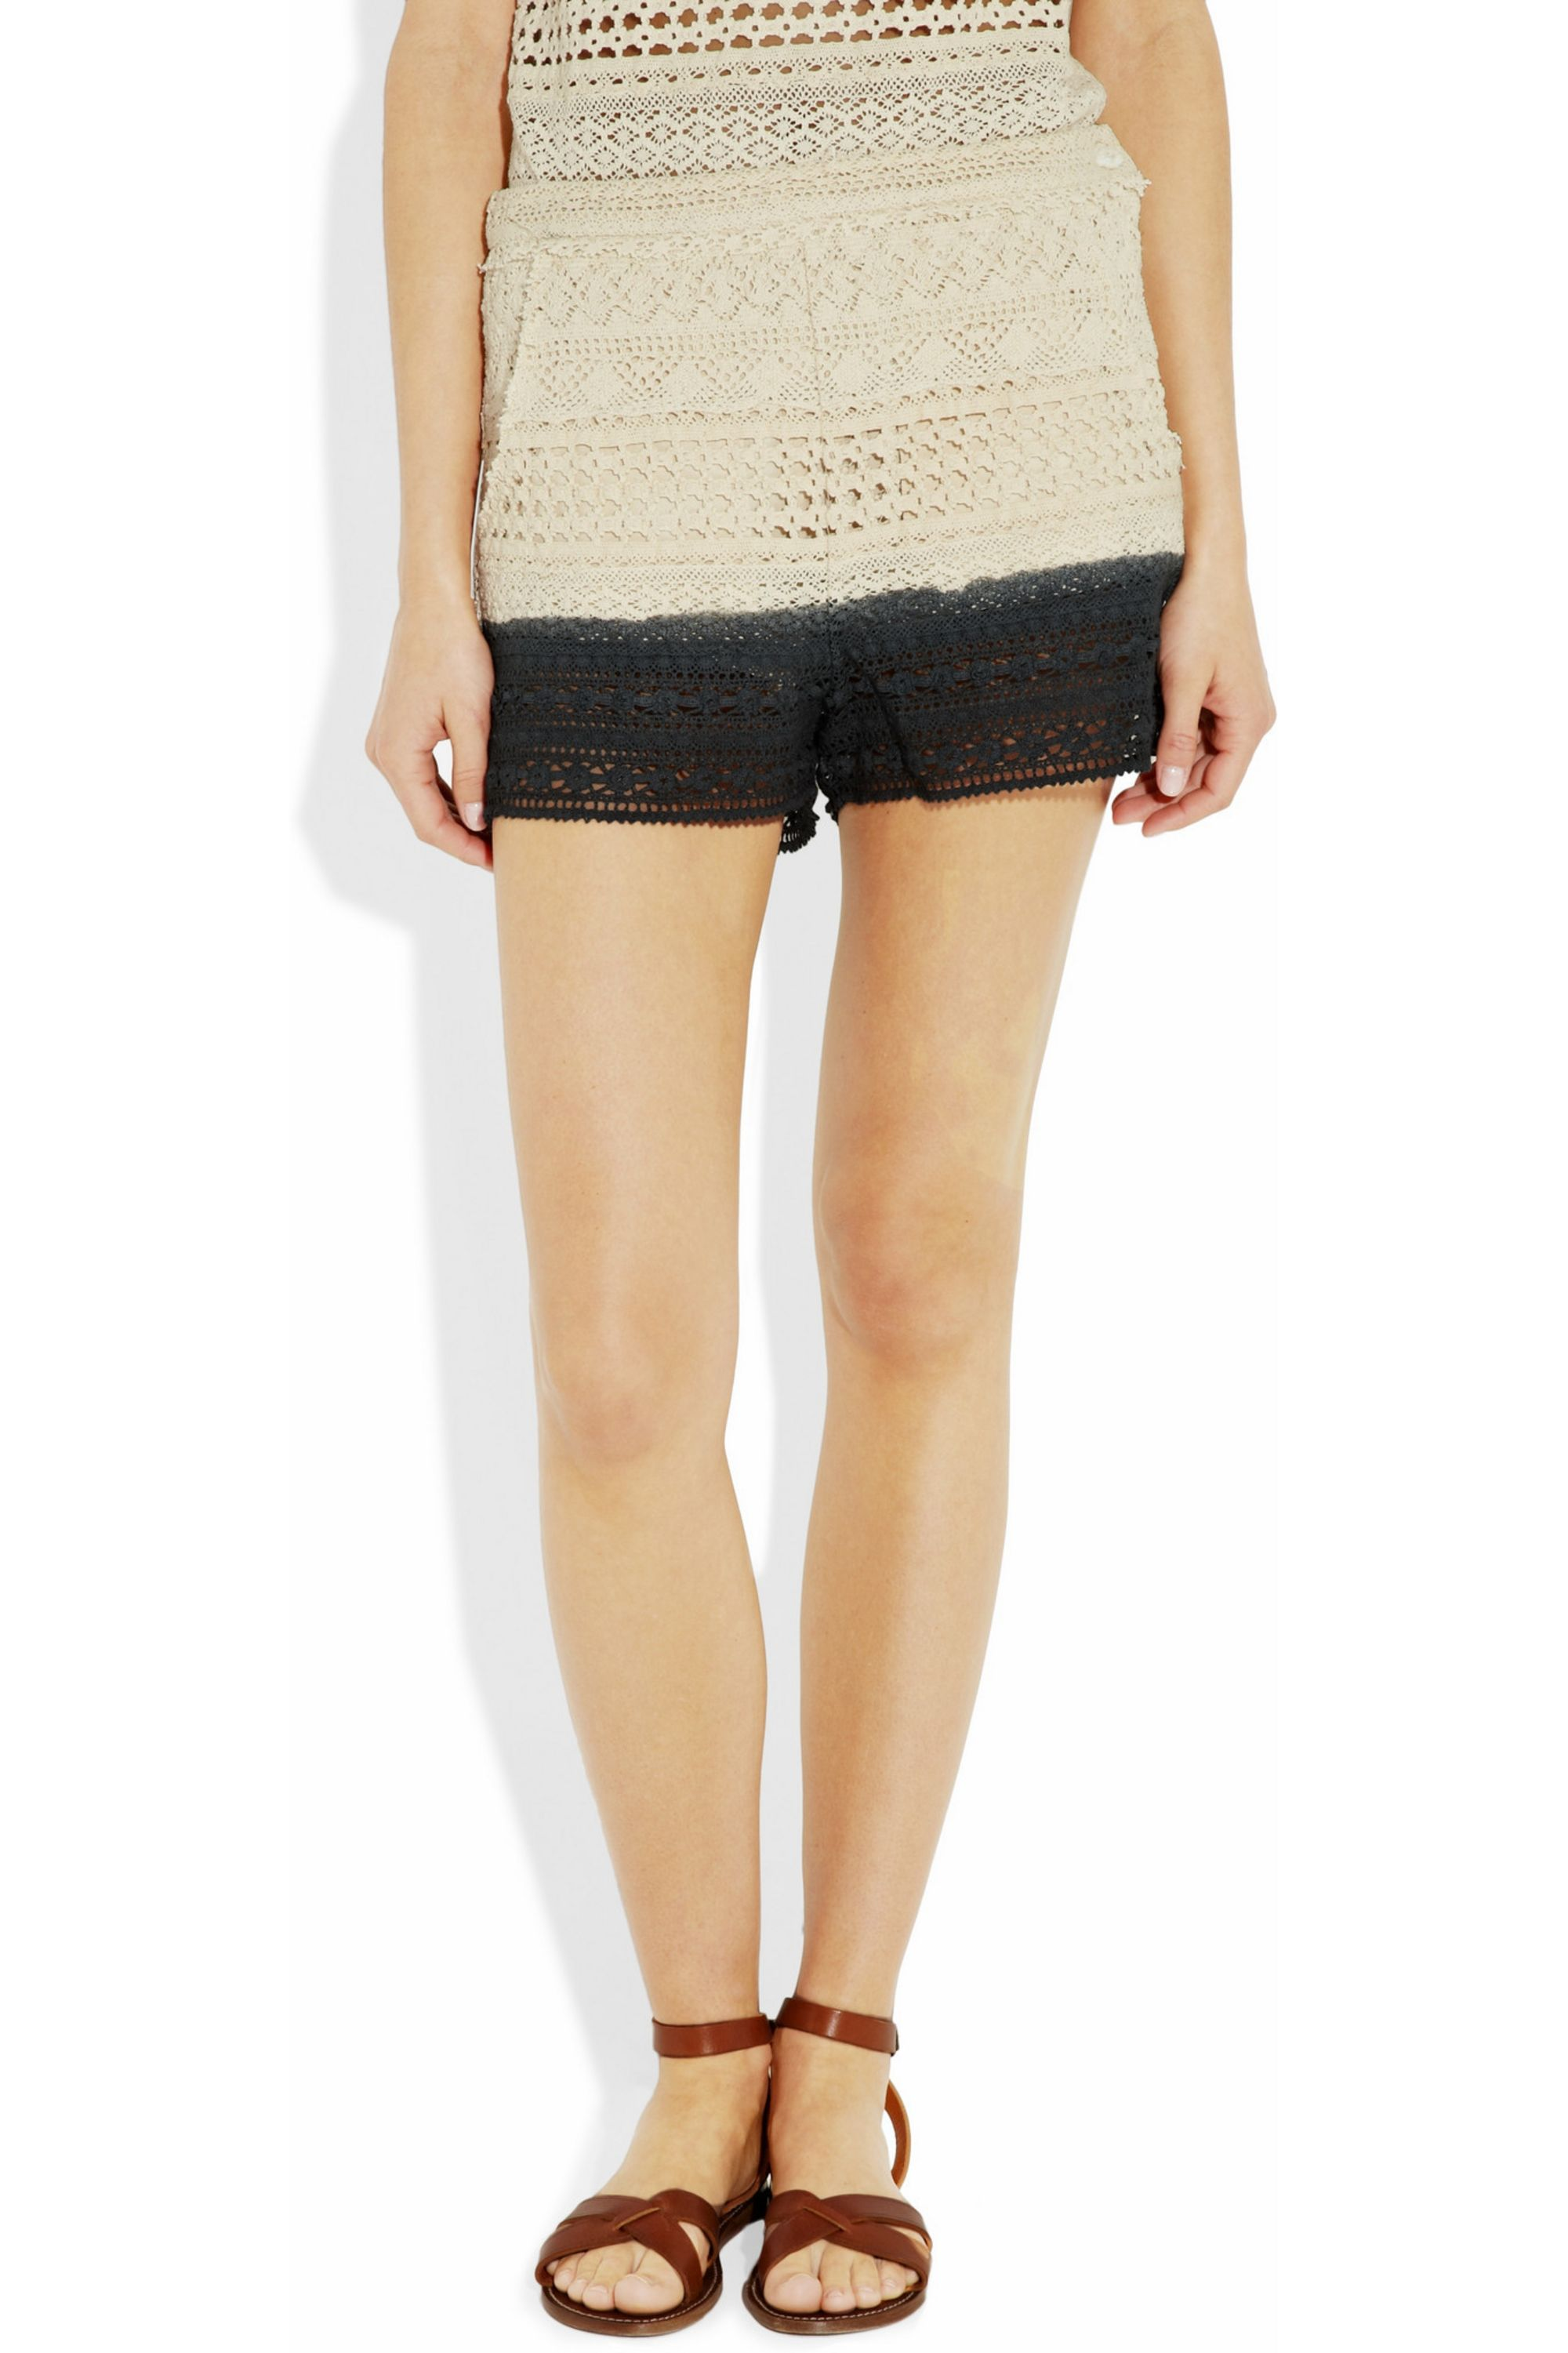 Band of Outsiders Cleo dip-dyed crochet-knit shorts